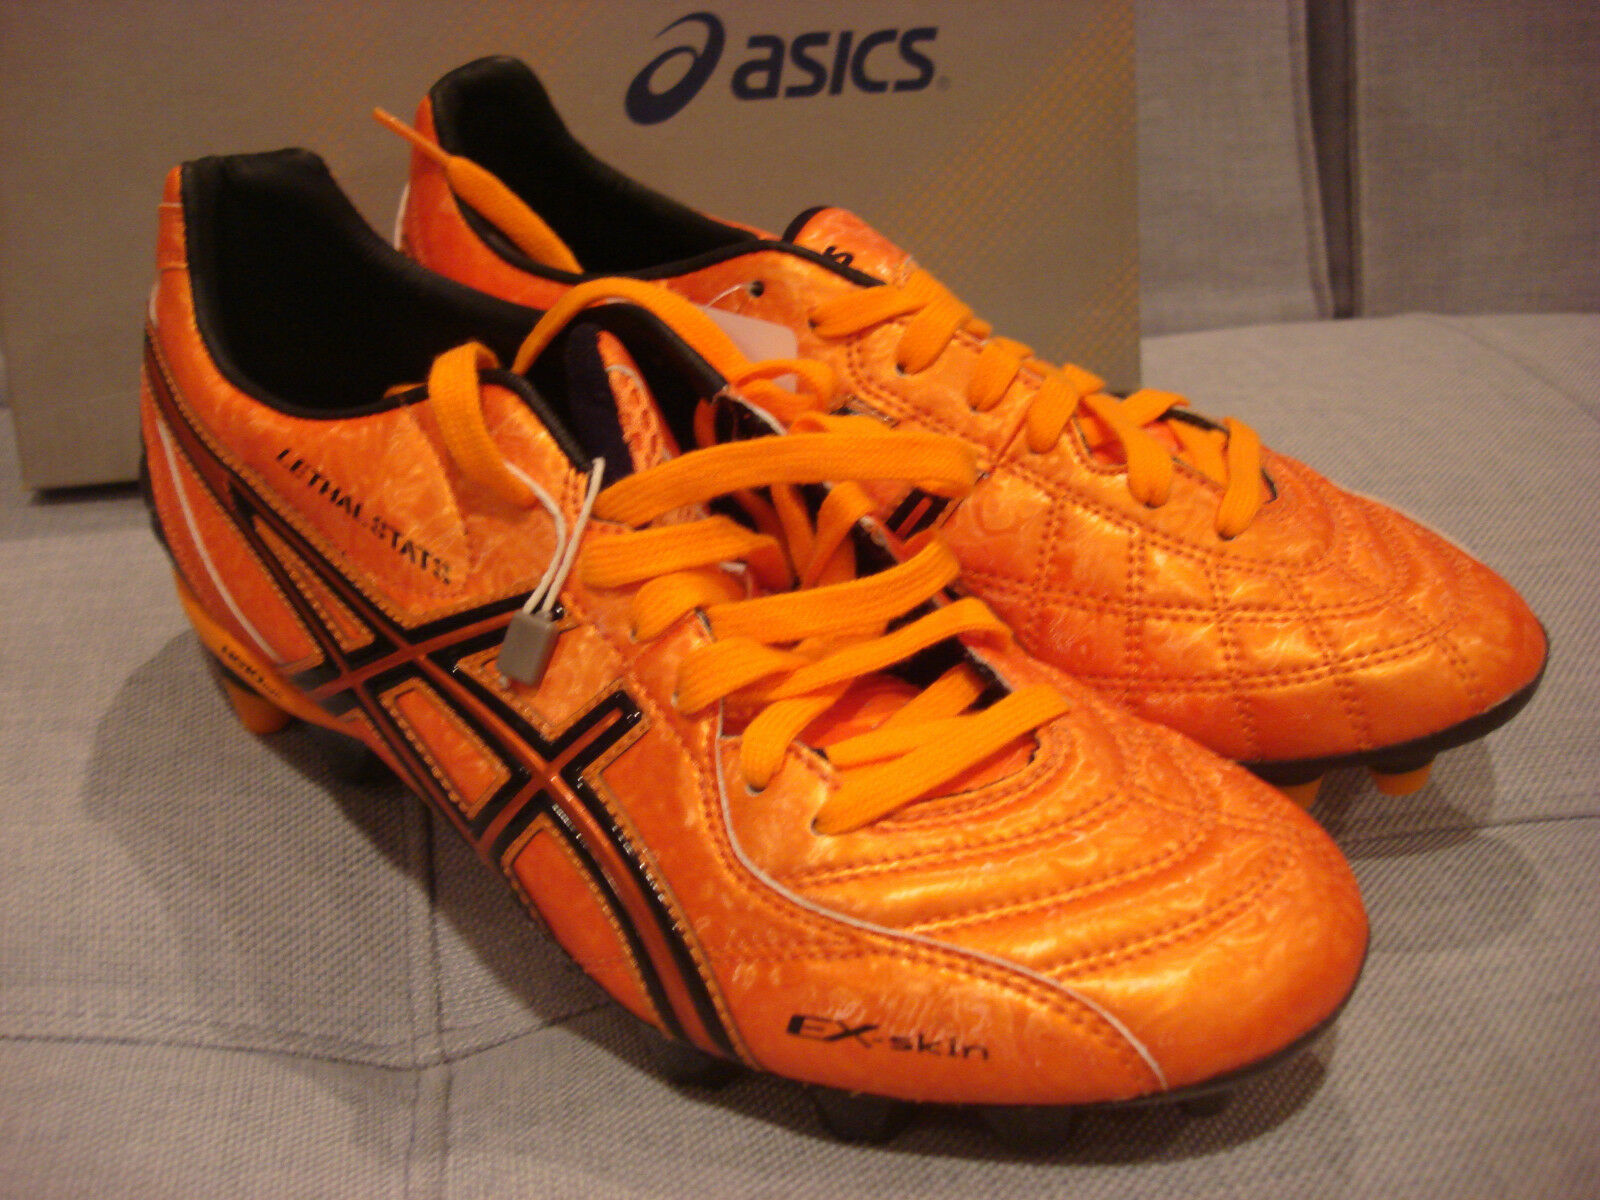 ASICS LETHAL STATS SK Soccer Football Orange Taille 7.5 chaussures noires-Neuf